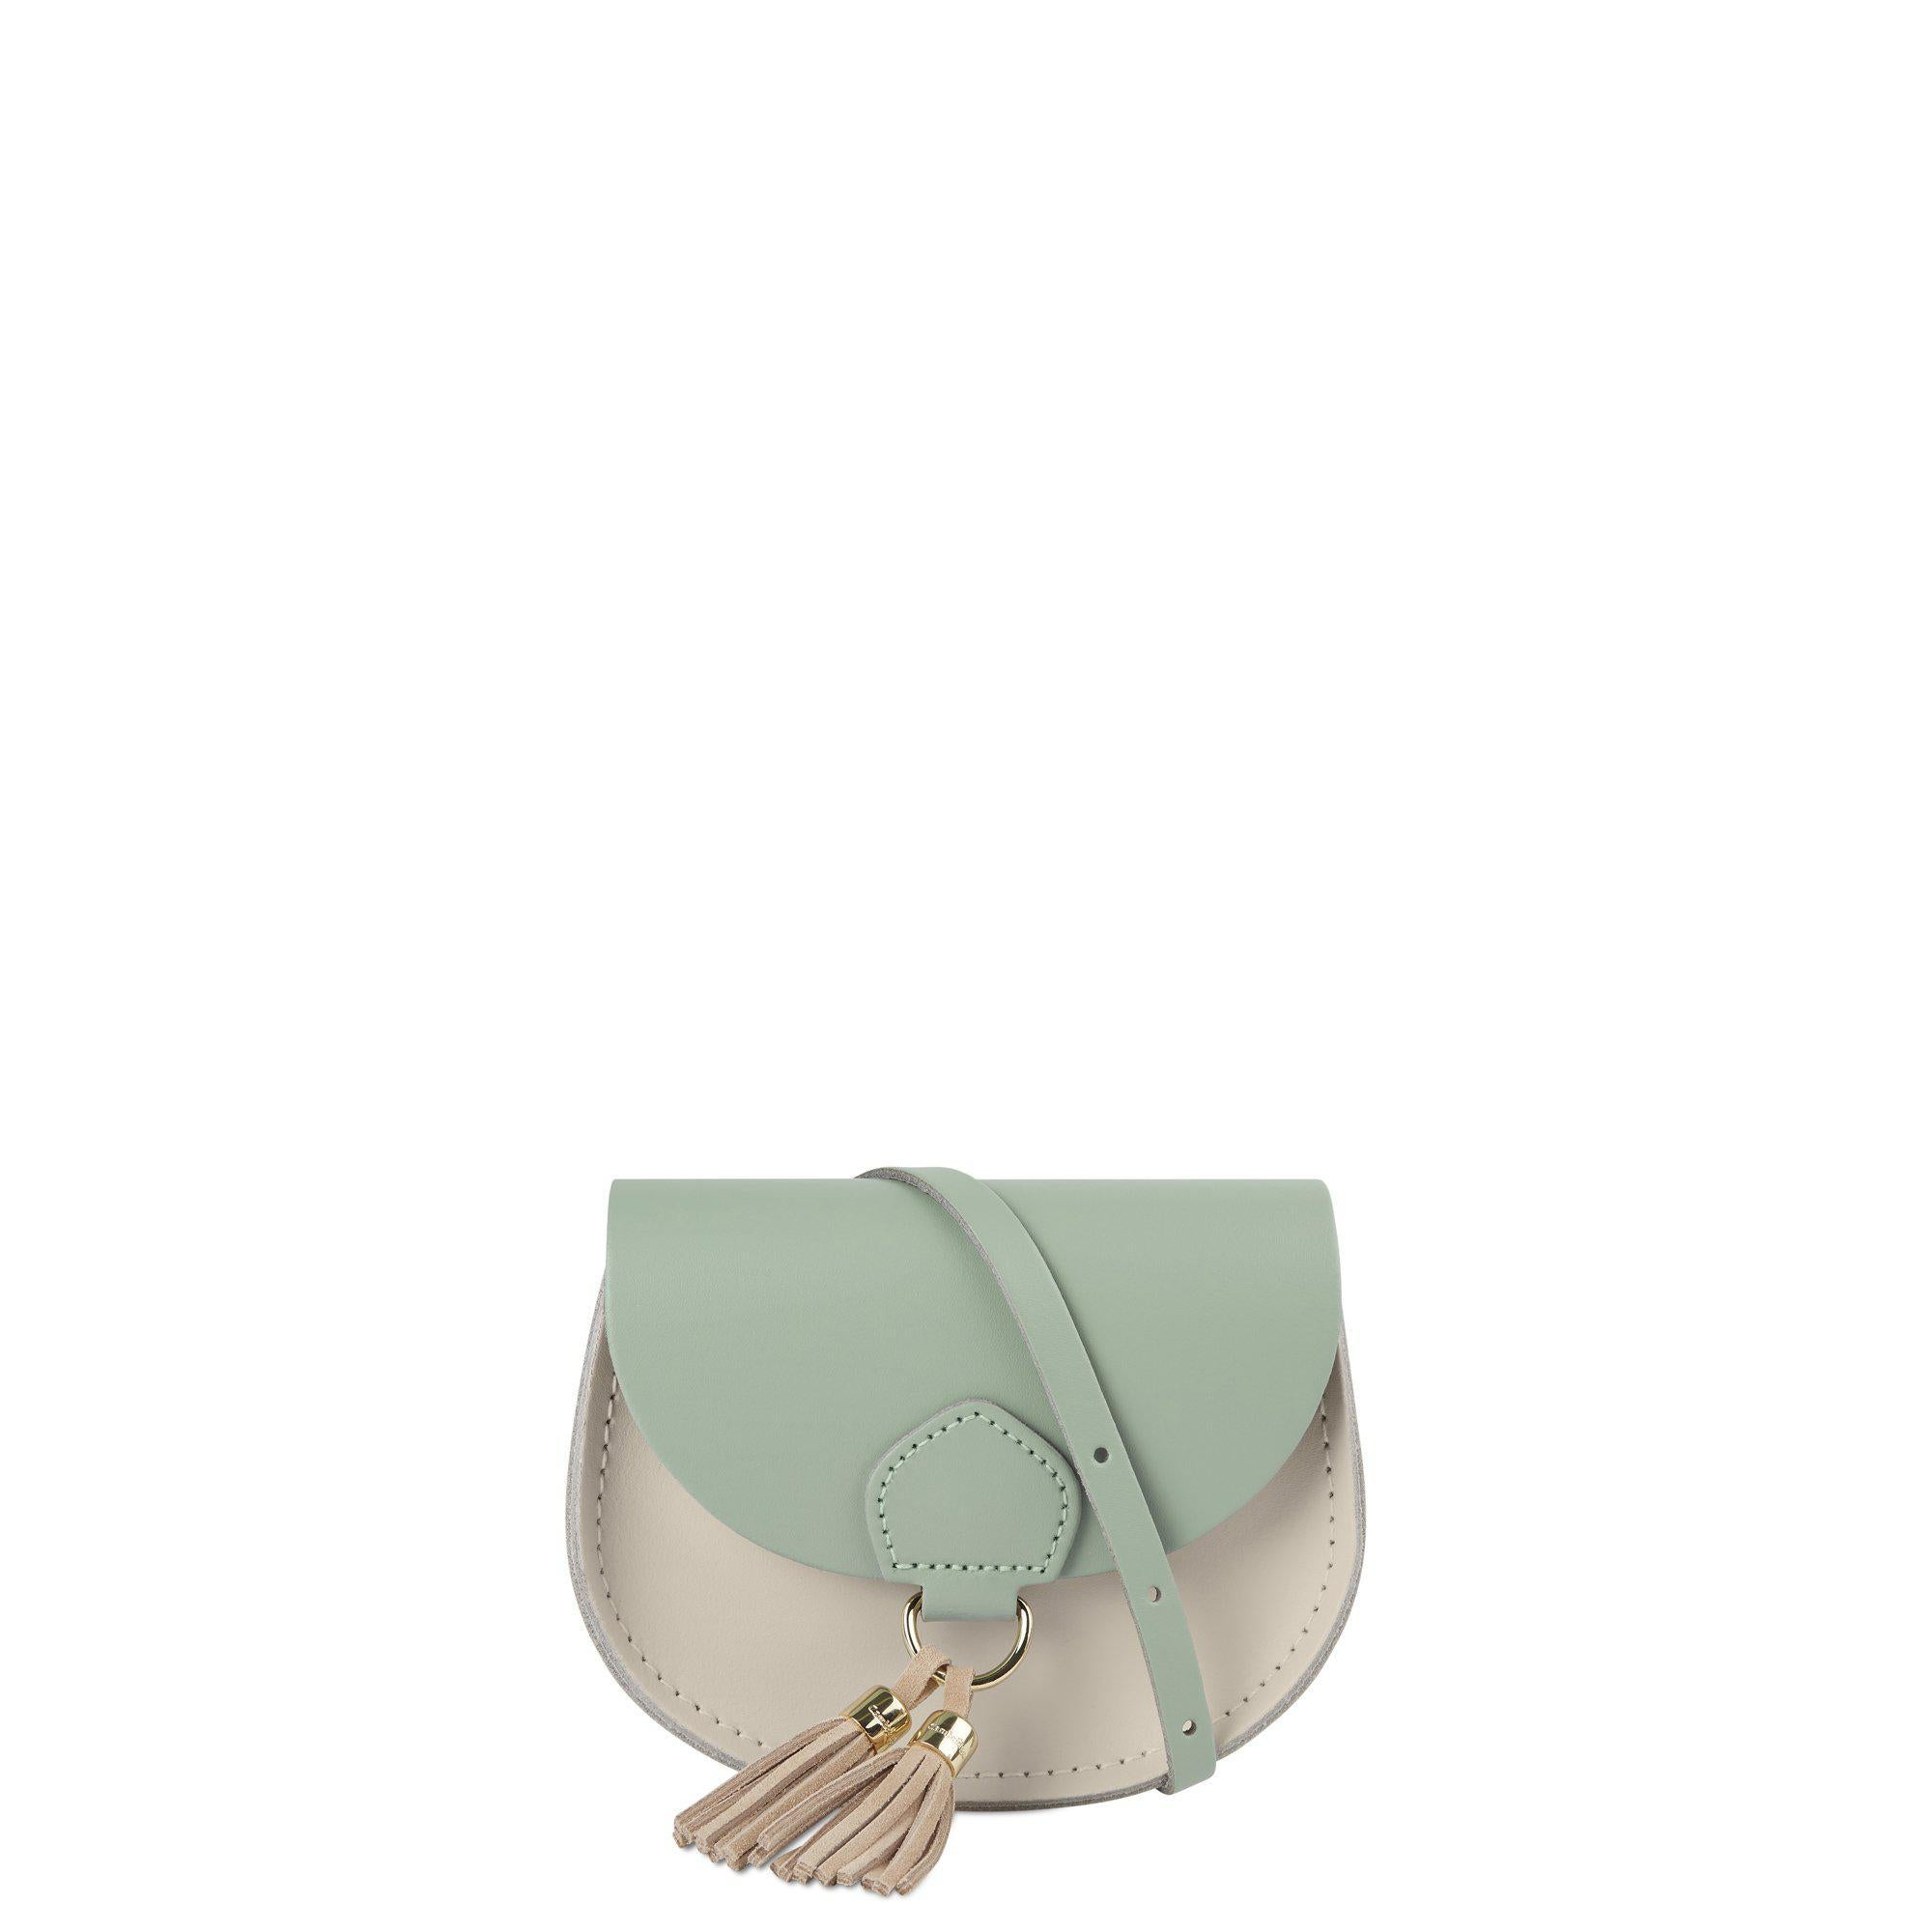 Mini Tassel Bag in Leather - Oasis Green & Clay Flax Suede